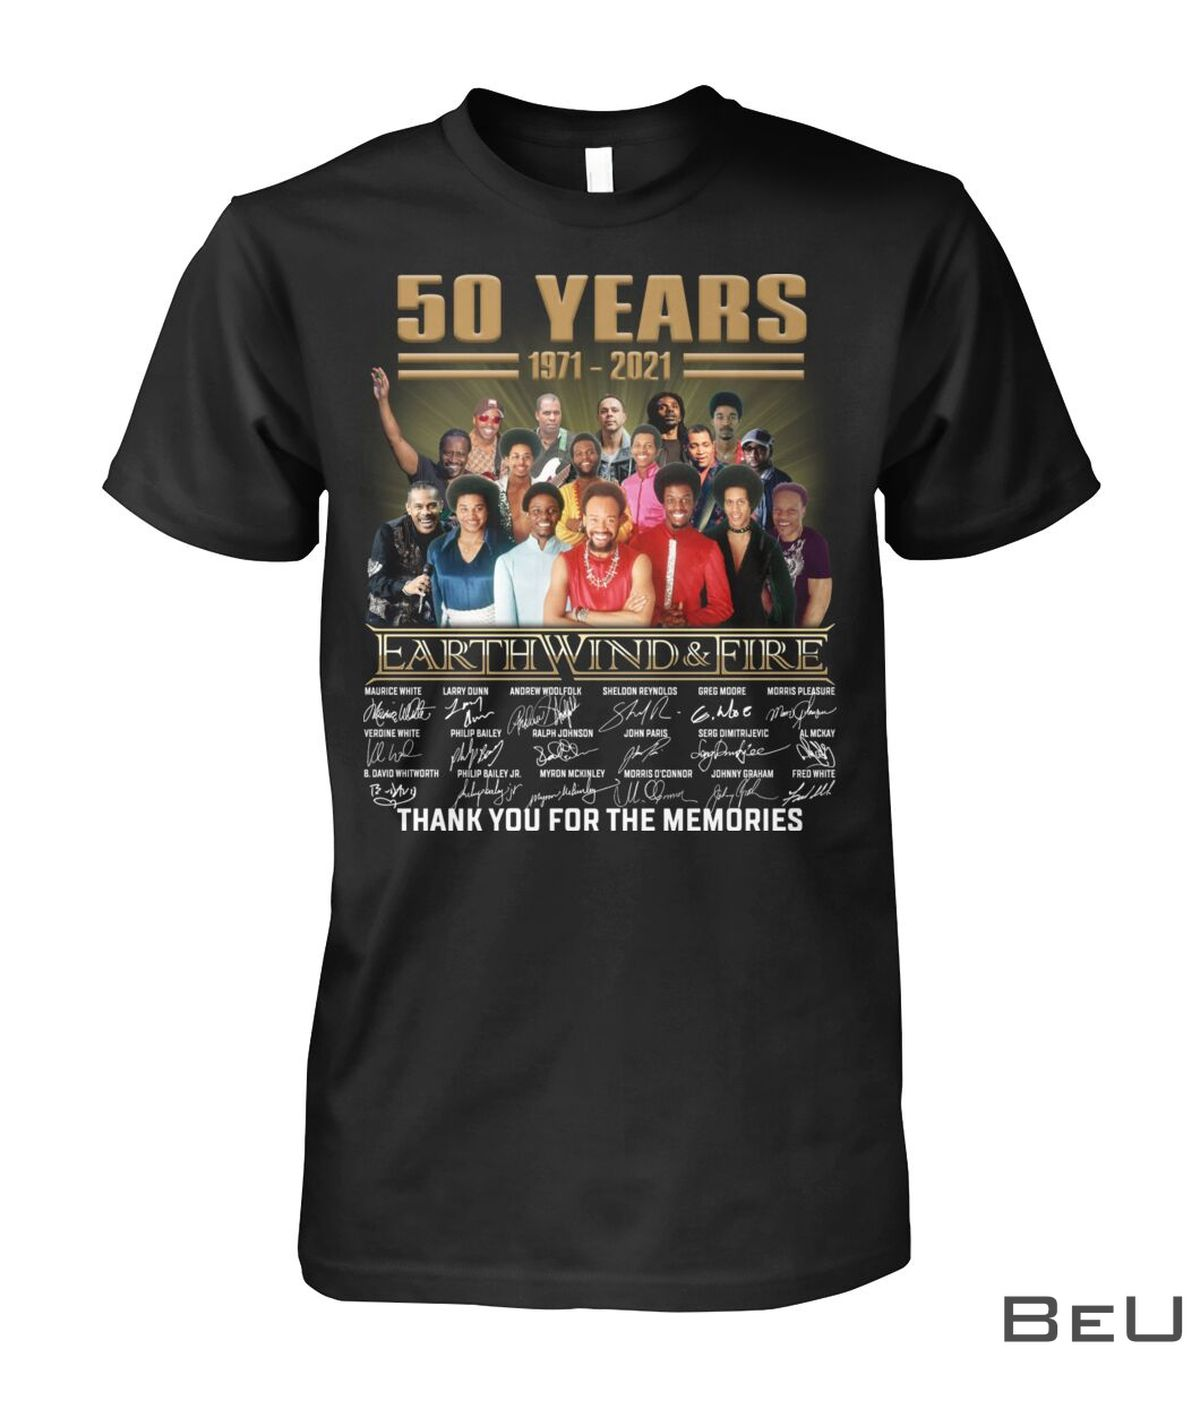 50 Years 1971- 2021 Earth Wind And Fire Thank You For The Memories Shirt